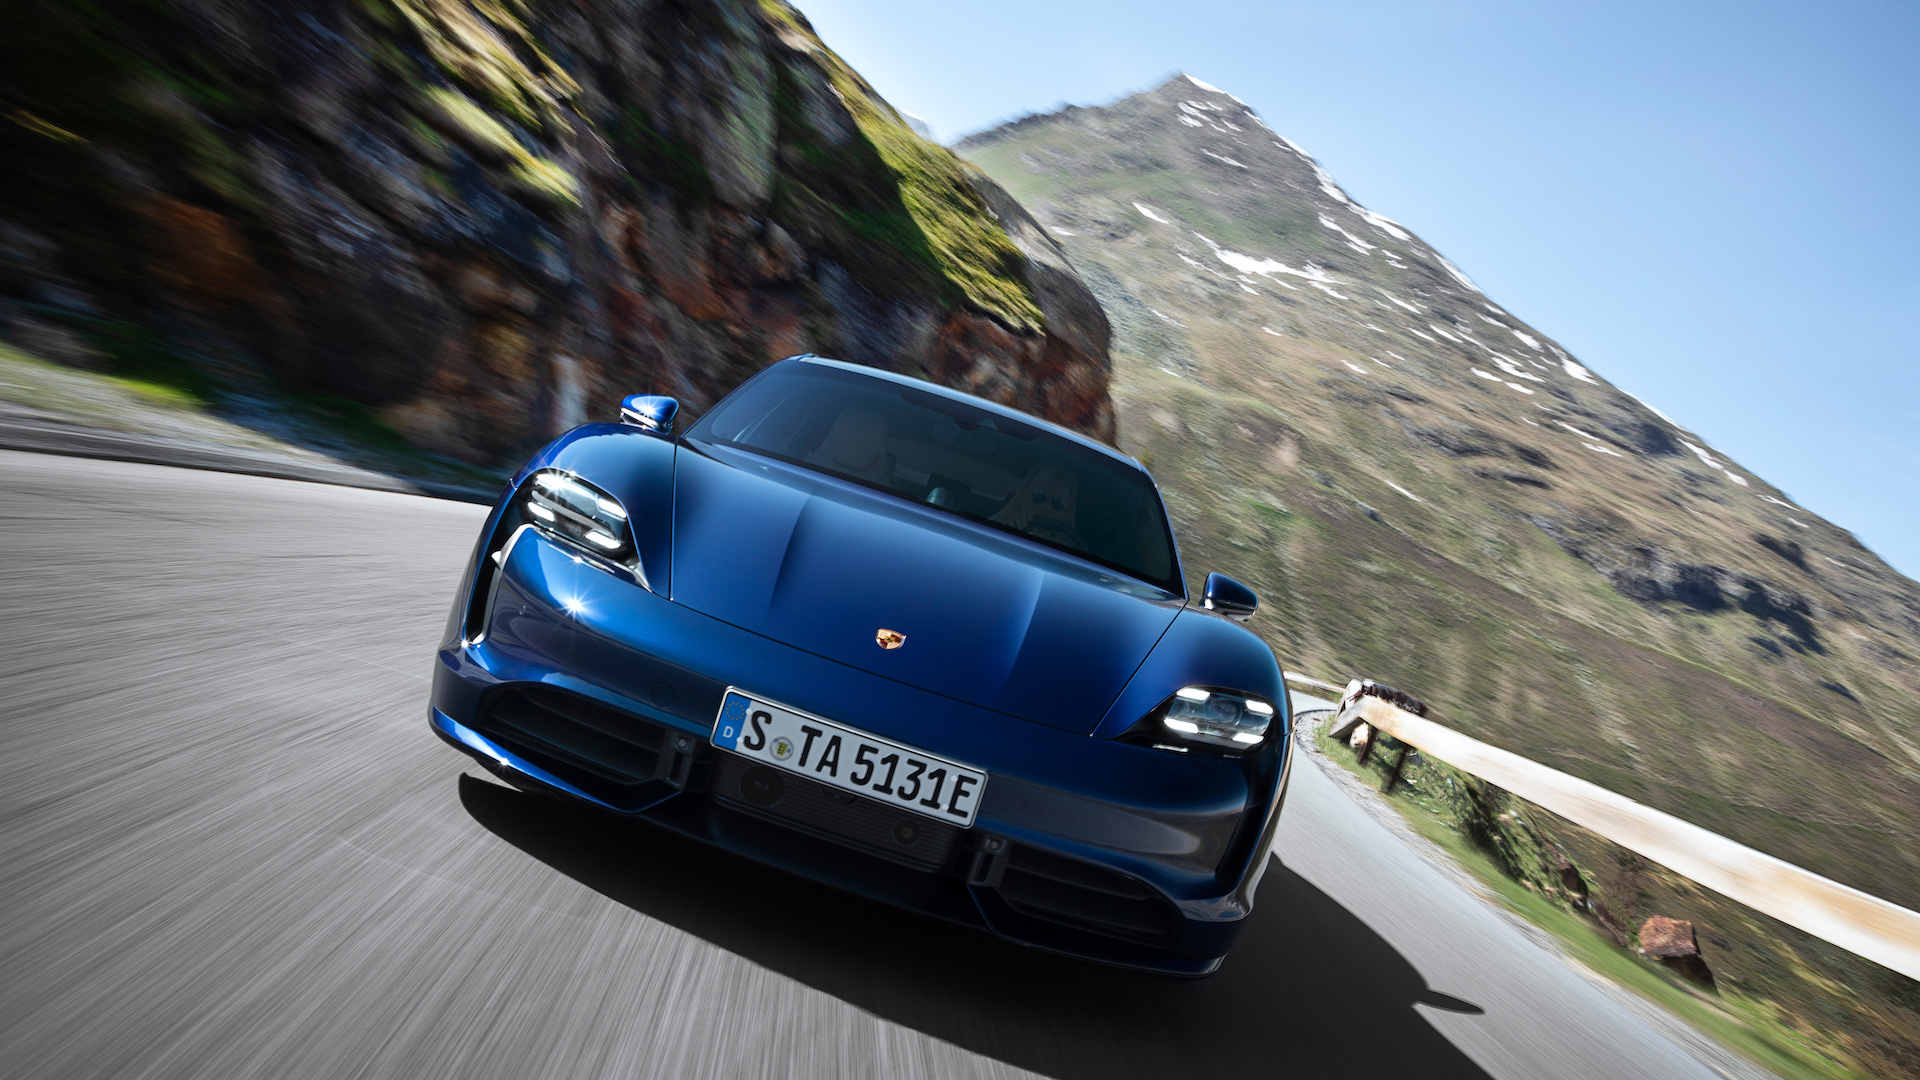 2020 Porsche Taycan Review Ratings Specs Prices and Photos 1920x1080